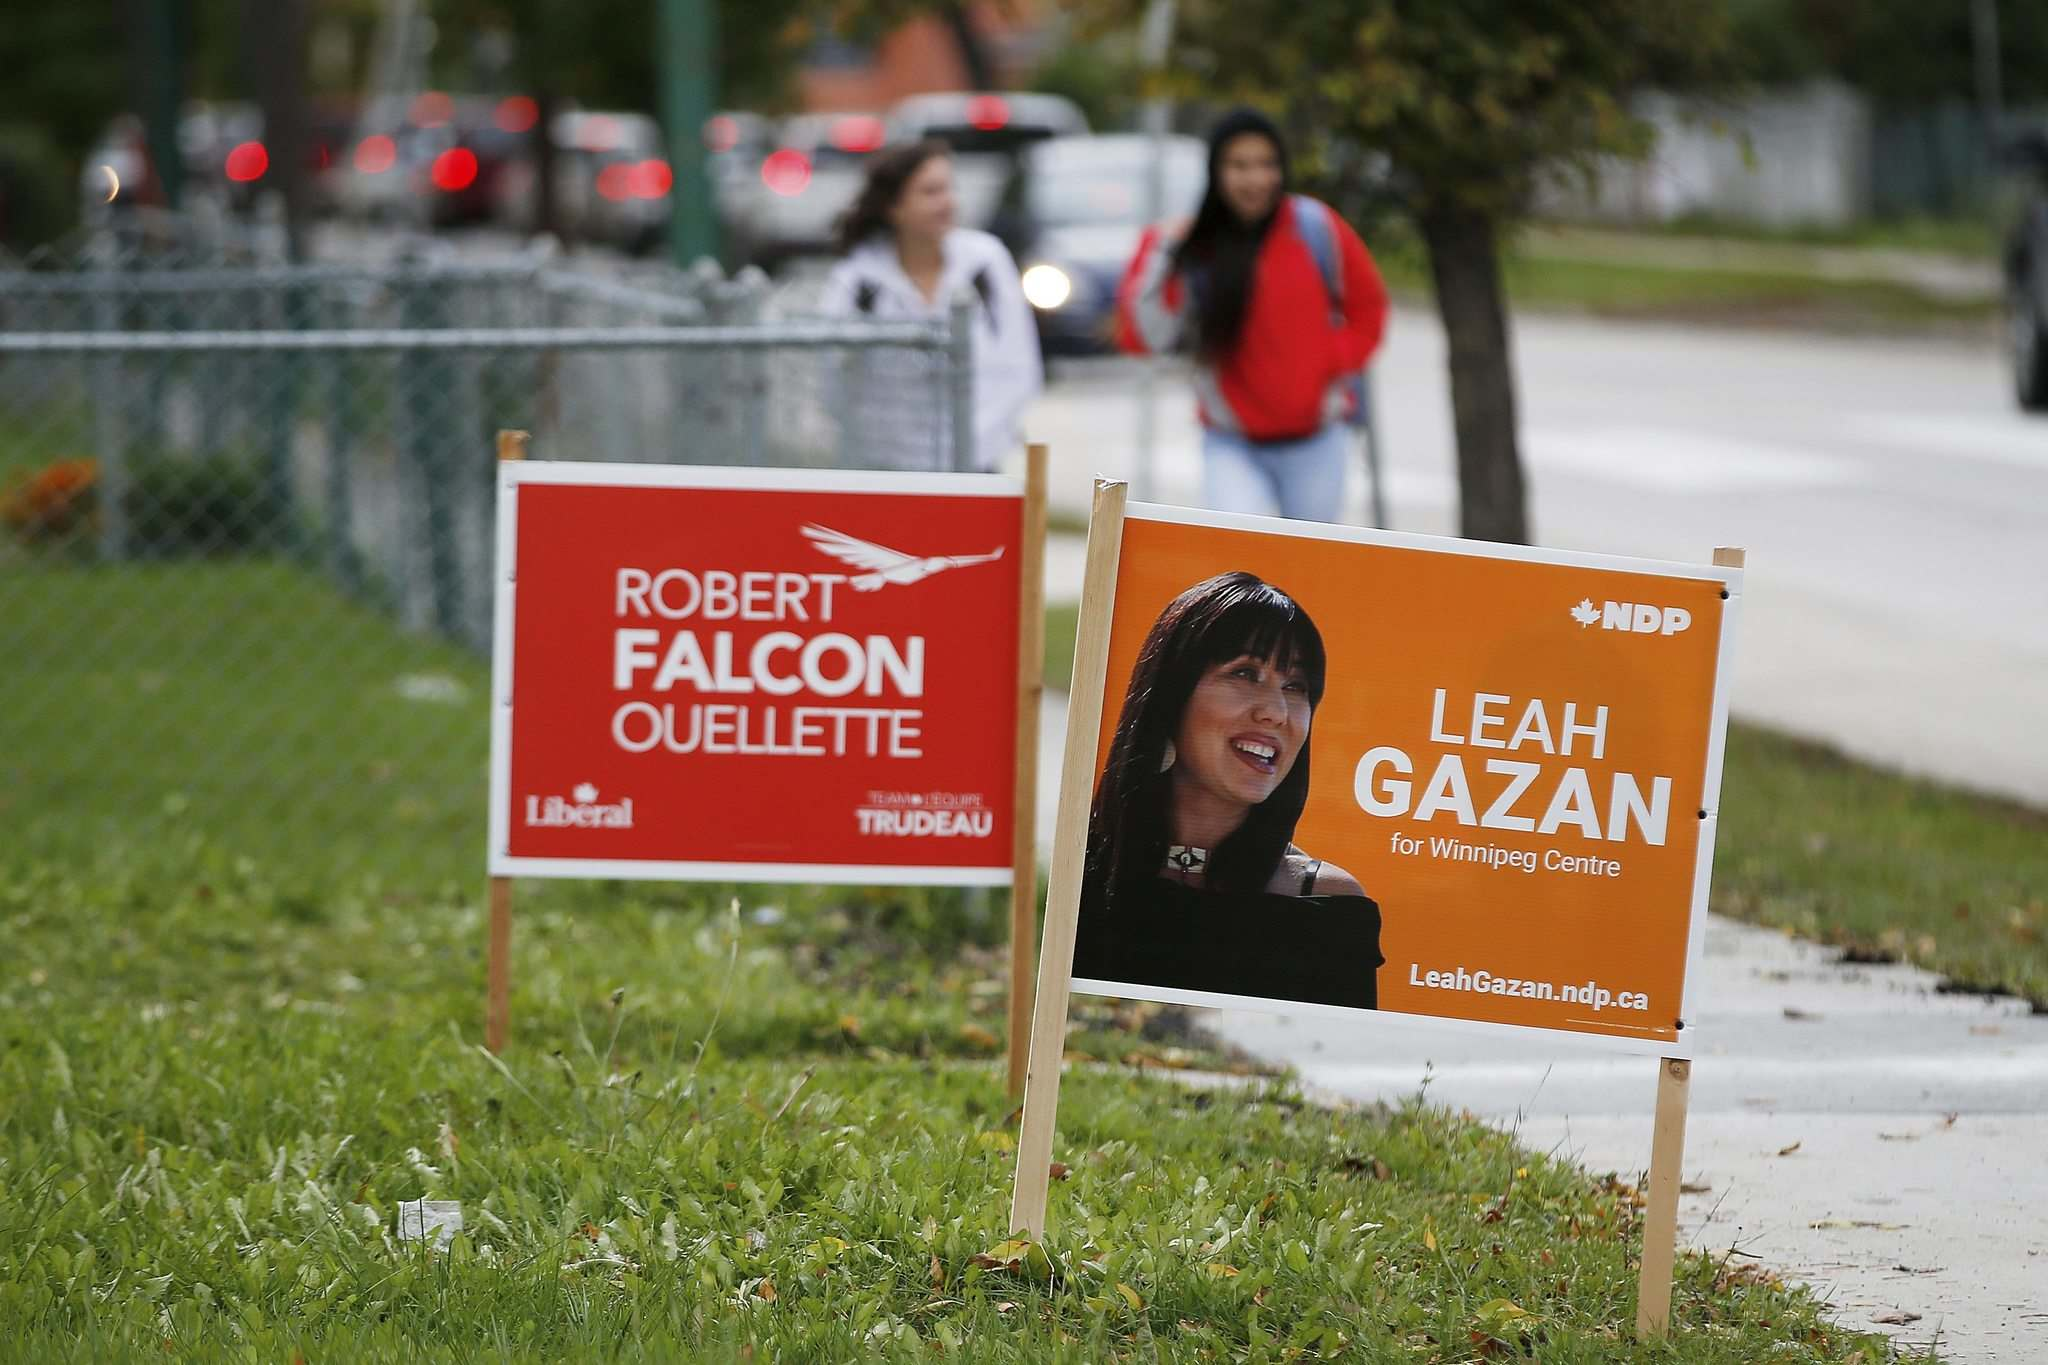 JOHN WOODS / WINNIPEG FREE PRESS</p><p>Liberal candidate Robert-Falcon Ouellette and NDP candidate Leah Gazan are the front-runners in the Winnipeg Centre riding.</p>